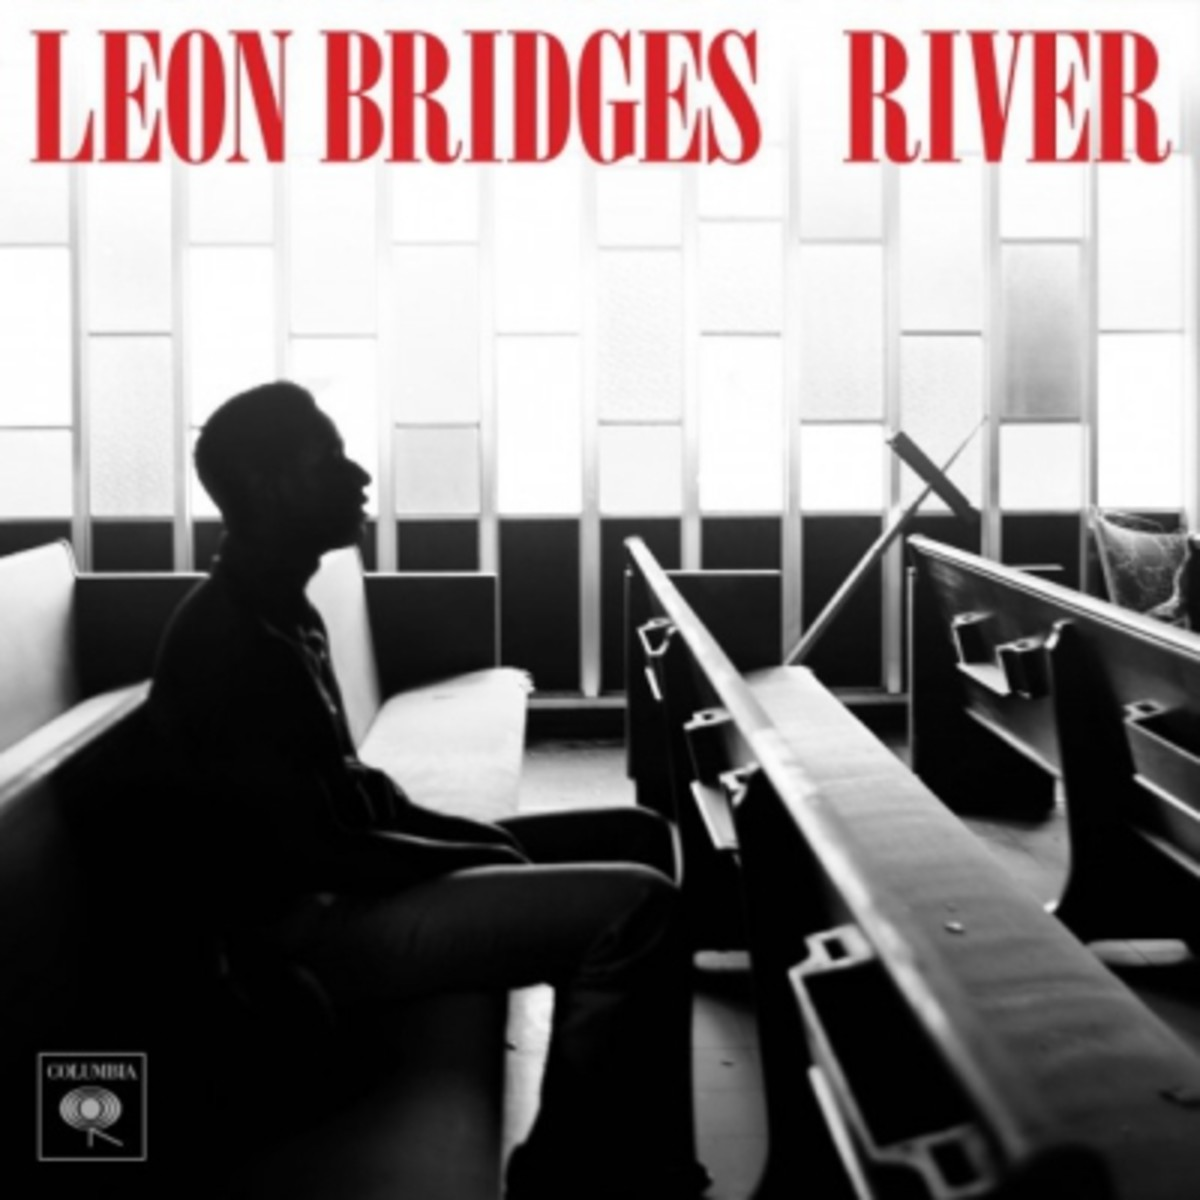 leon-bridges-river.jpg